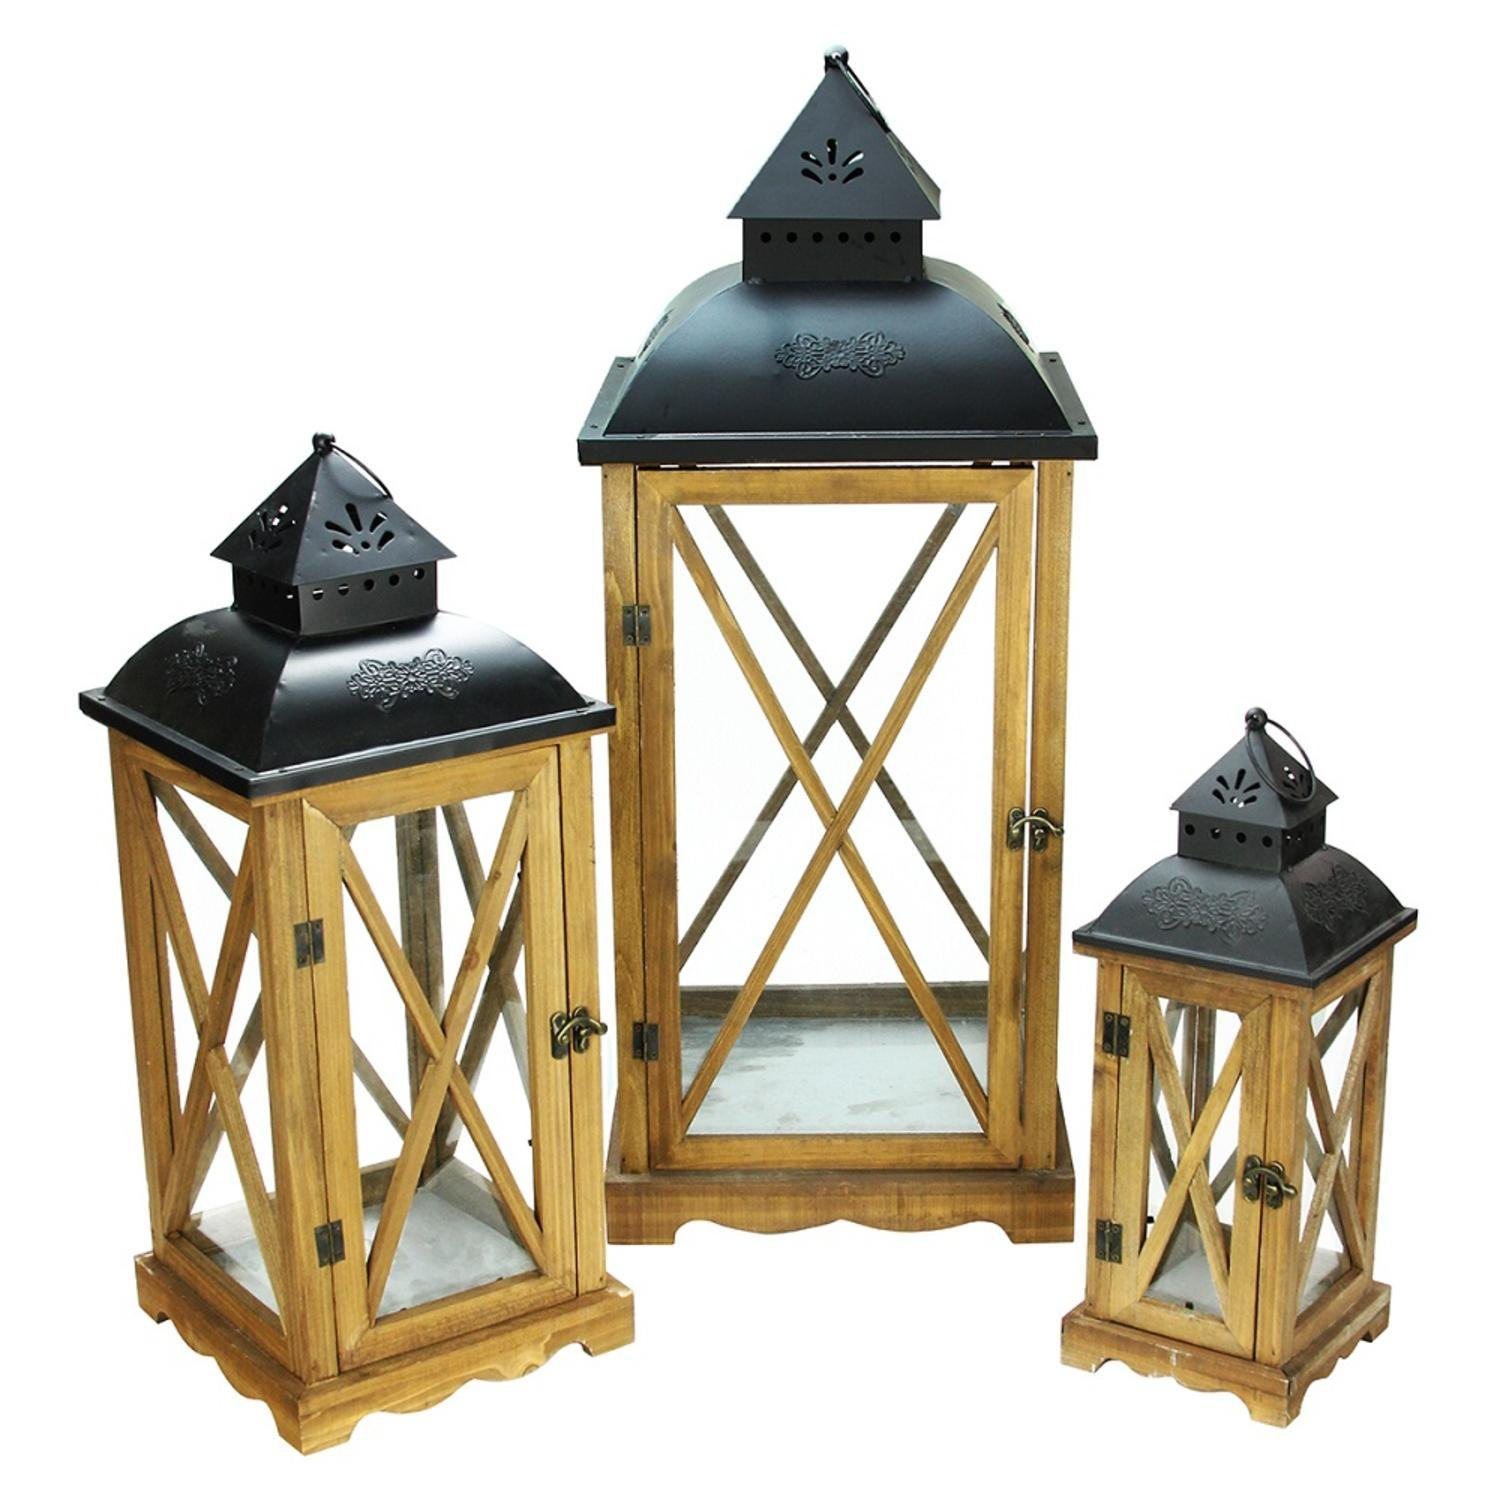 Northlight  Country Elegance Wooden Garden Style Glass Pillar Candle Lanterns, Set of 3, 14.75''/27.75'' by Northlight